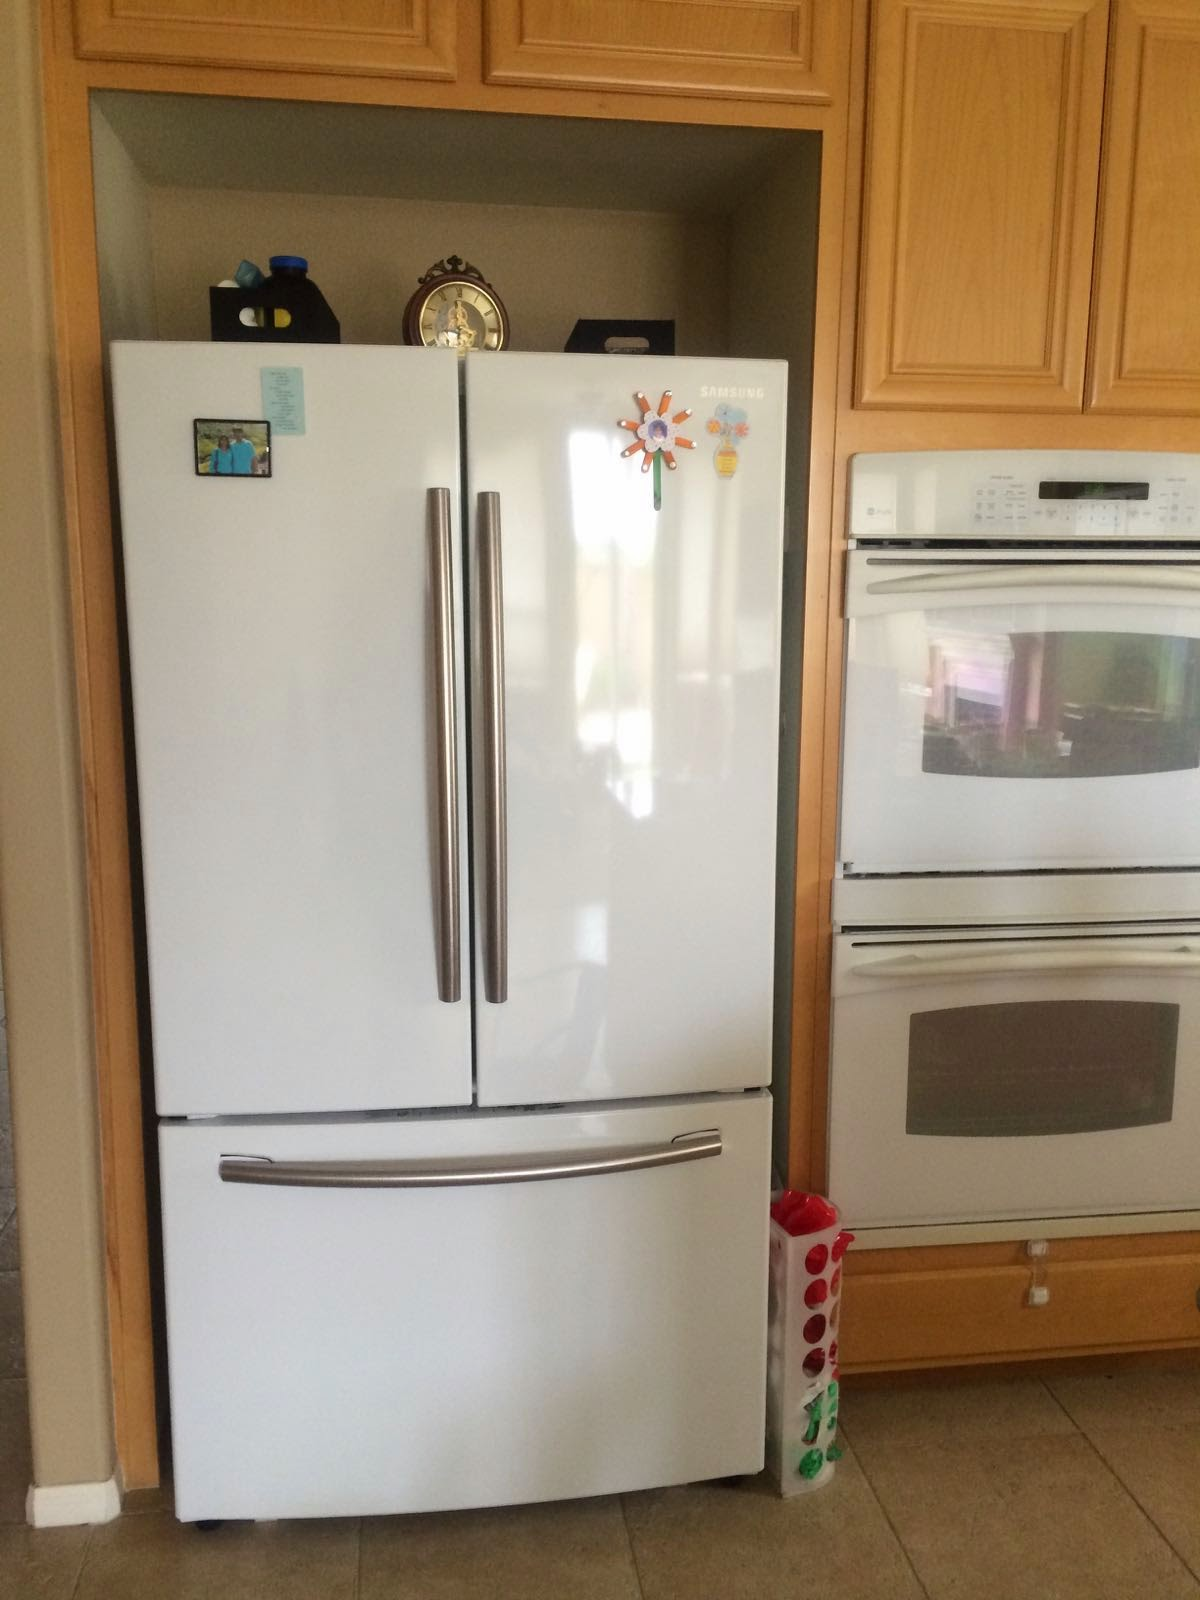 Whirlpool white ice line - I Have Been Eyeing On Whirlpool White Ice Refridgerator From The Time They Introduced The Line But They Are So Expensive It Remained As A Fantasy